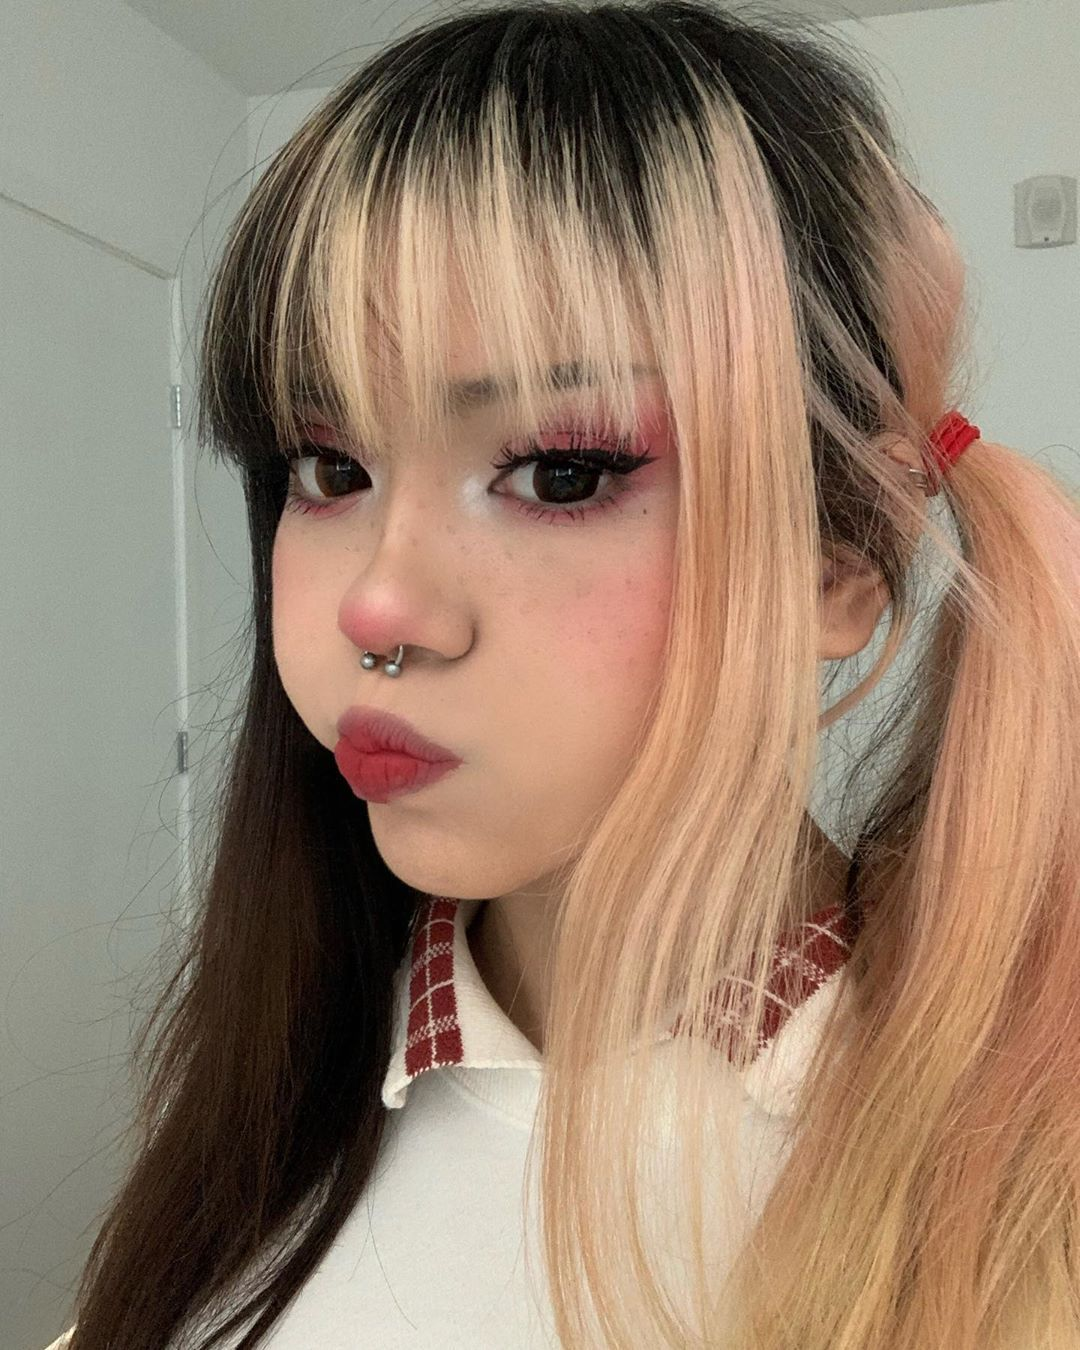 Lina On Instagram More Pigtail Photos I Guess D In 2020 Hair Inspo Color Aesthetic Hair Grunge Hair